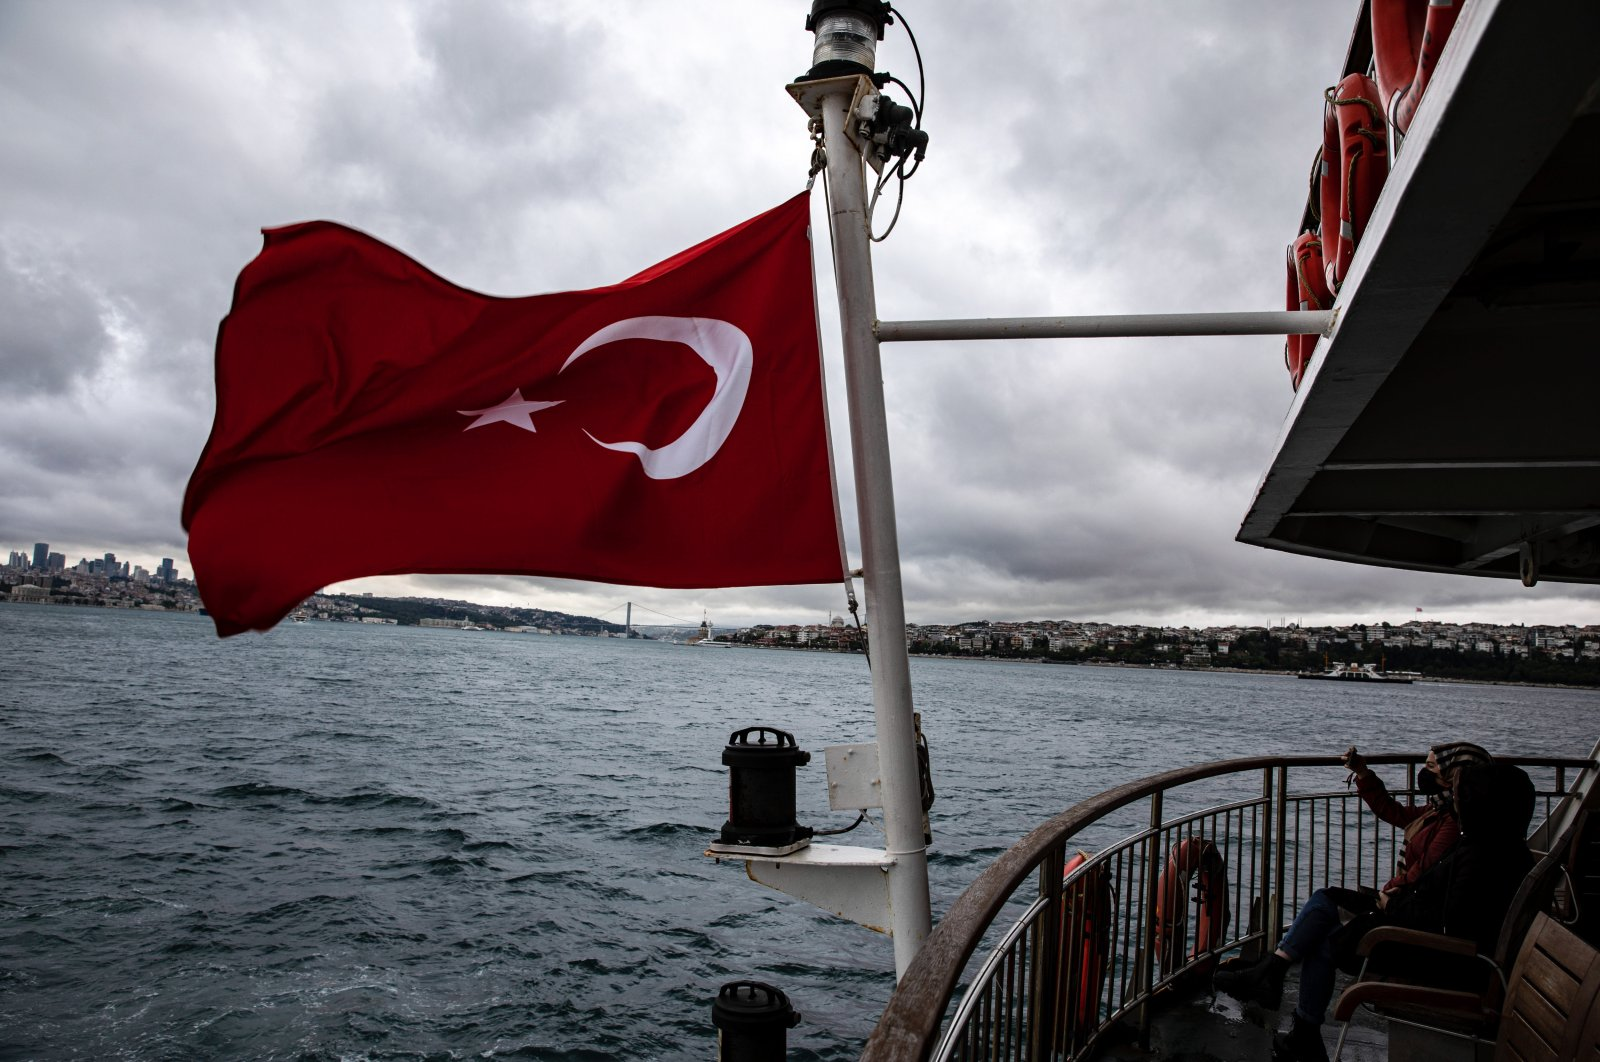 People traveling on a ferry from the Eminönü district to the Kadıköy district take pictures on a cloudy day, Istanbul, Turkey, May 21, 2021. (Photo by Getty Images)